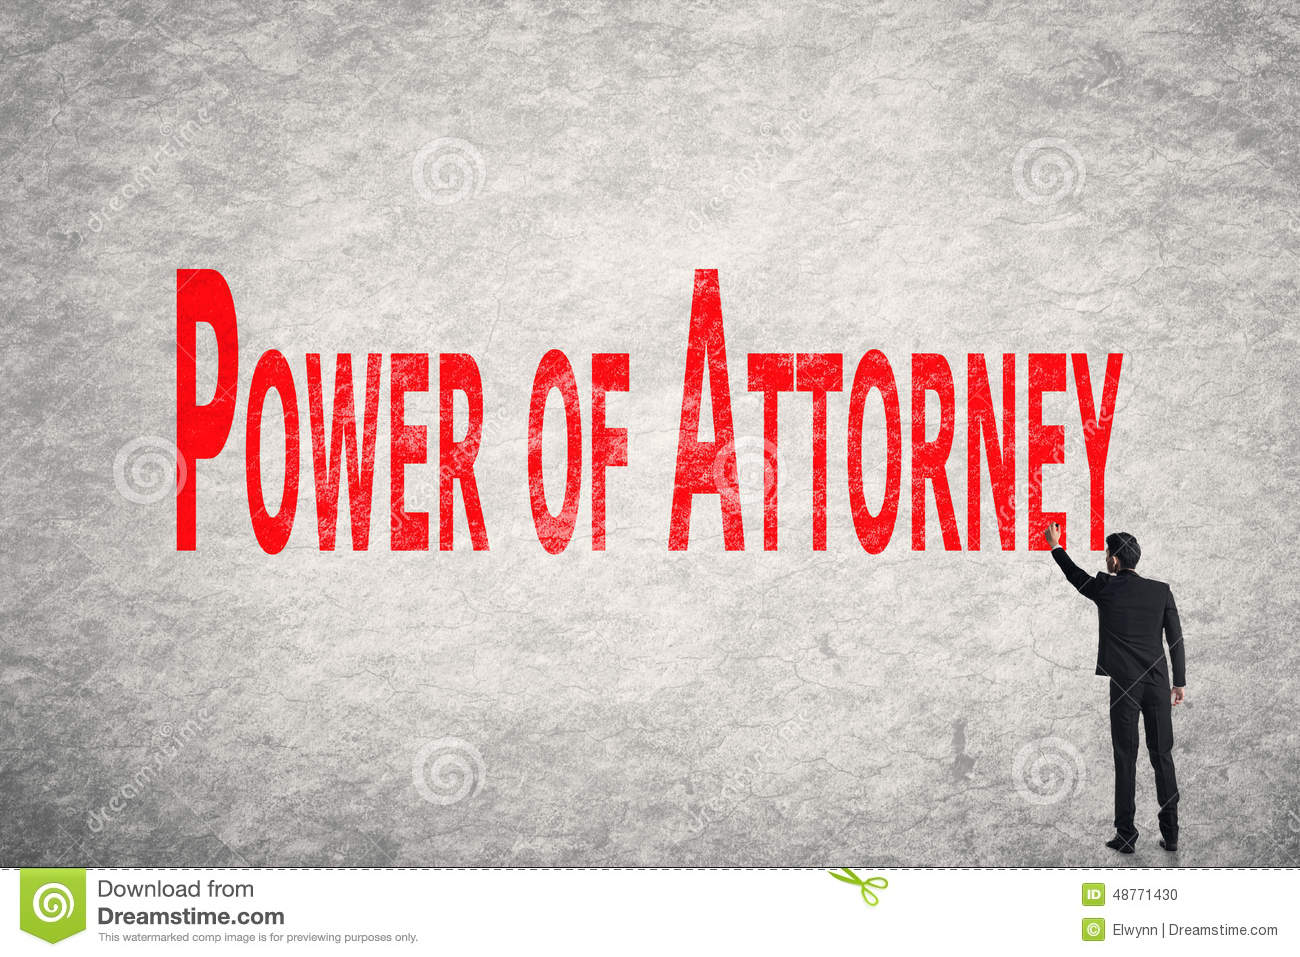 Power of Attorney Clip Art.